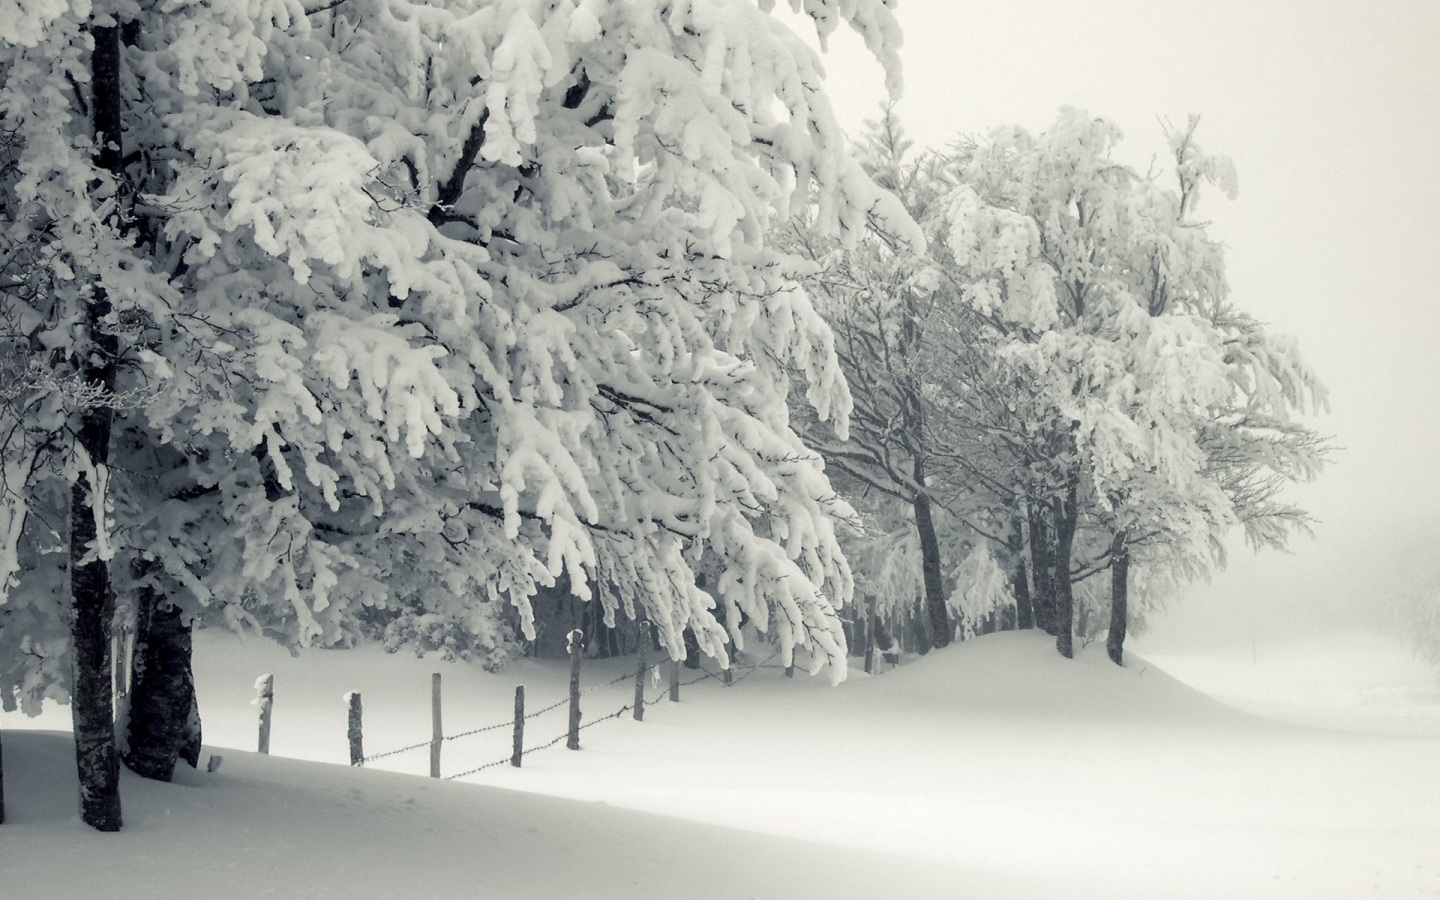 Iphone wallpaper tumblr snow - Snow Trees Wallpaper Hd Iphone Android Download Free Animated Tumblr